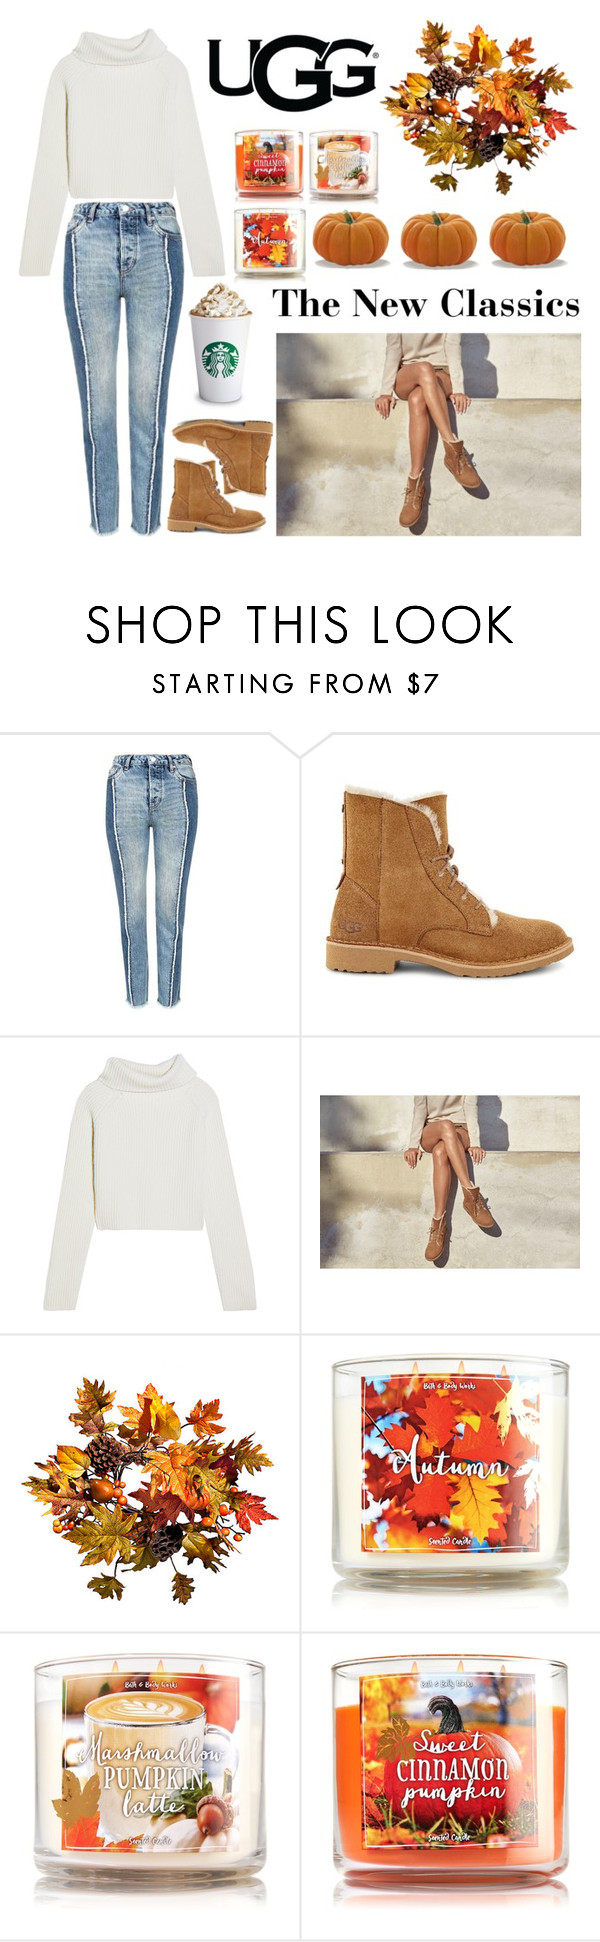 """The New Classics With UGG: Contest Entry"" by vaydamarie ❤ liked on Polyvore featuring Topshop, UGG, Haider Ackermann, Improvements, ugg and falltrend"